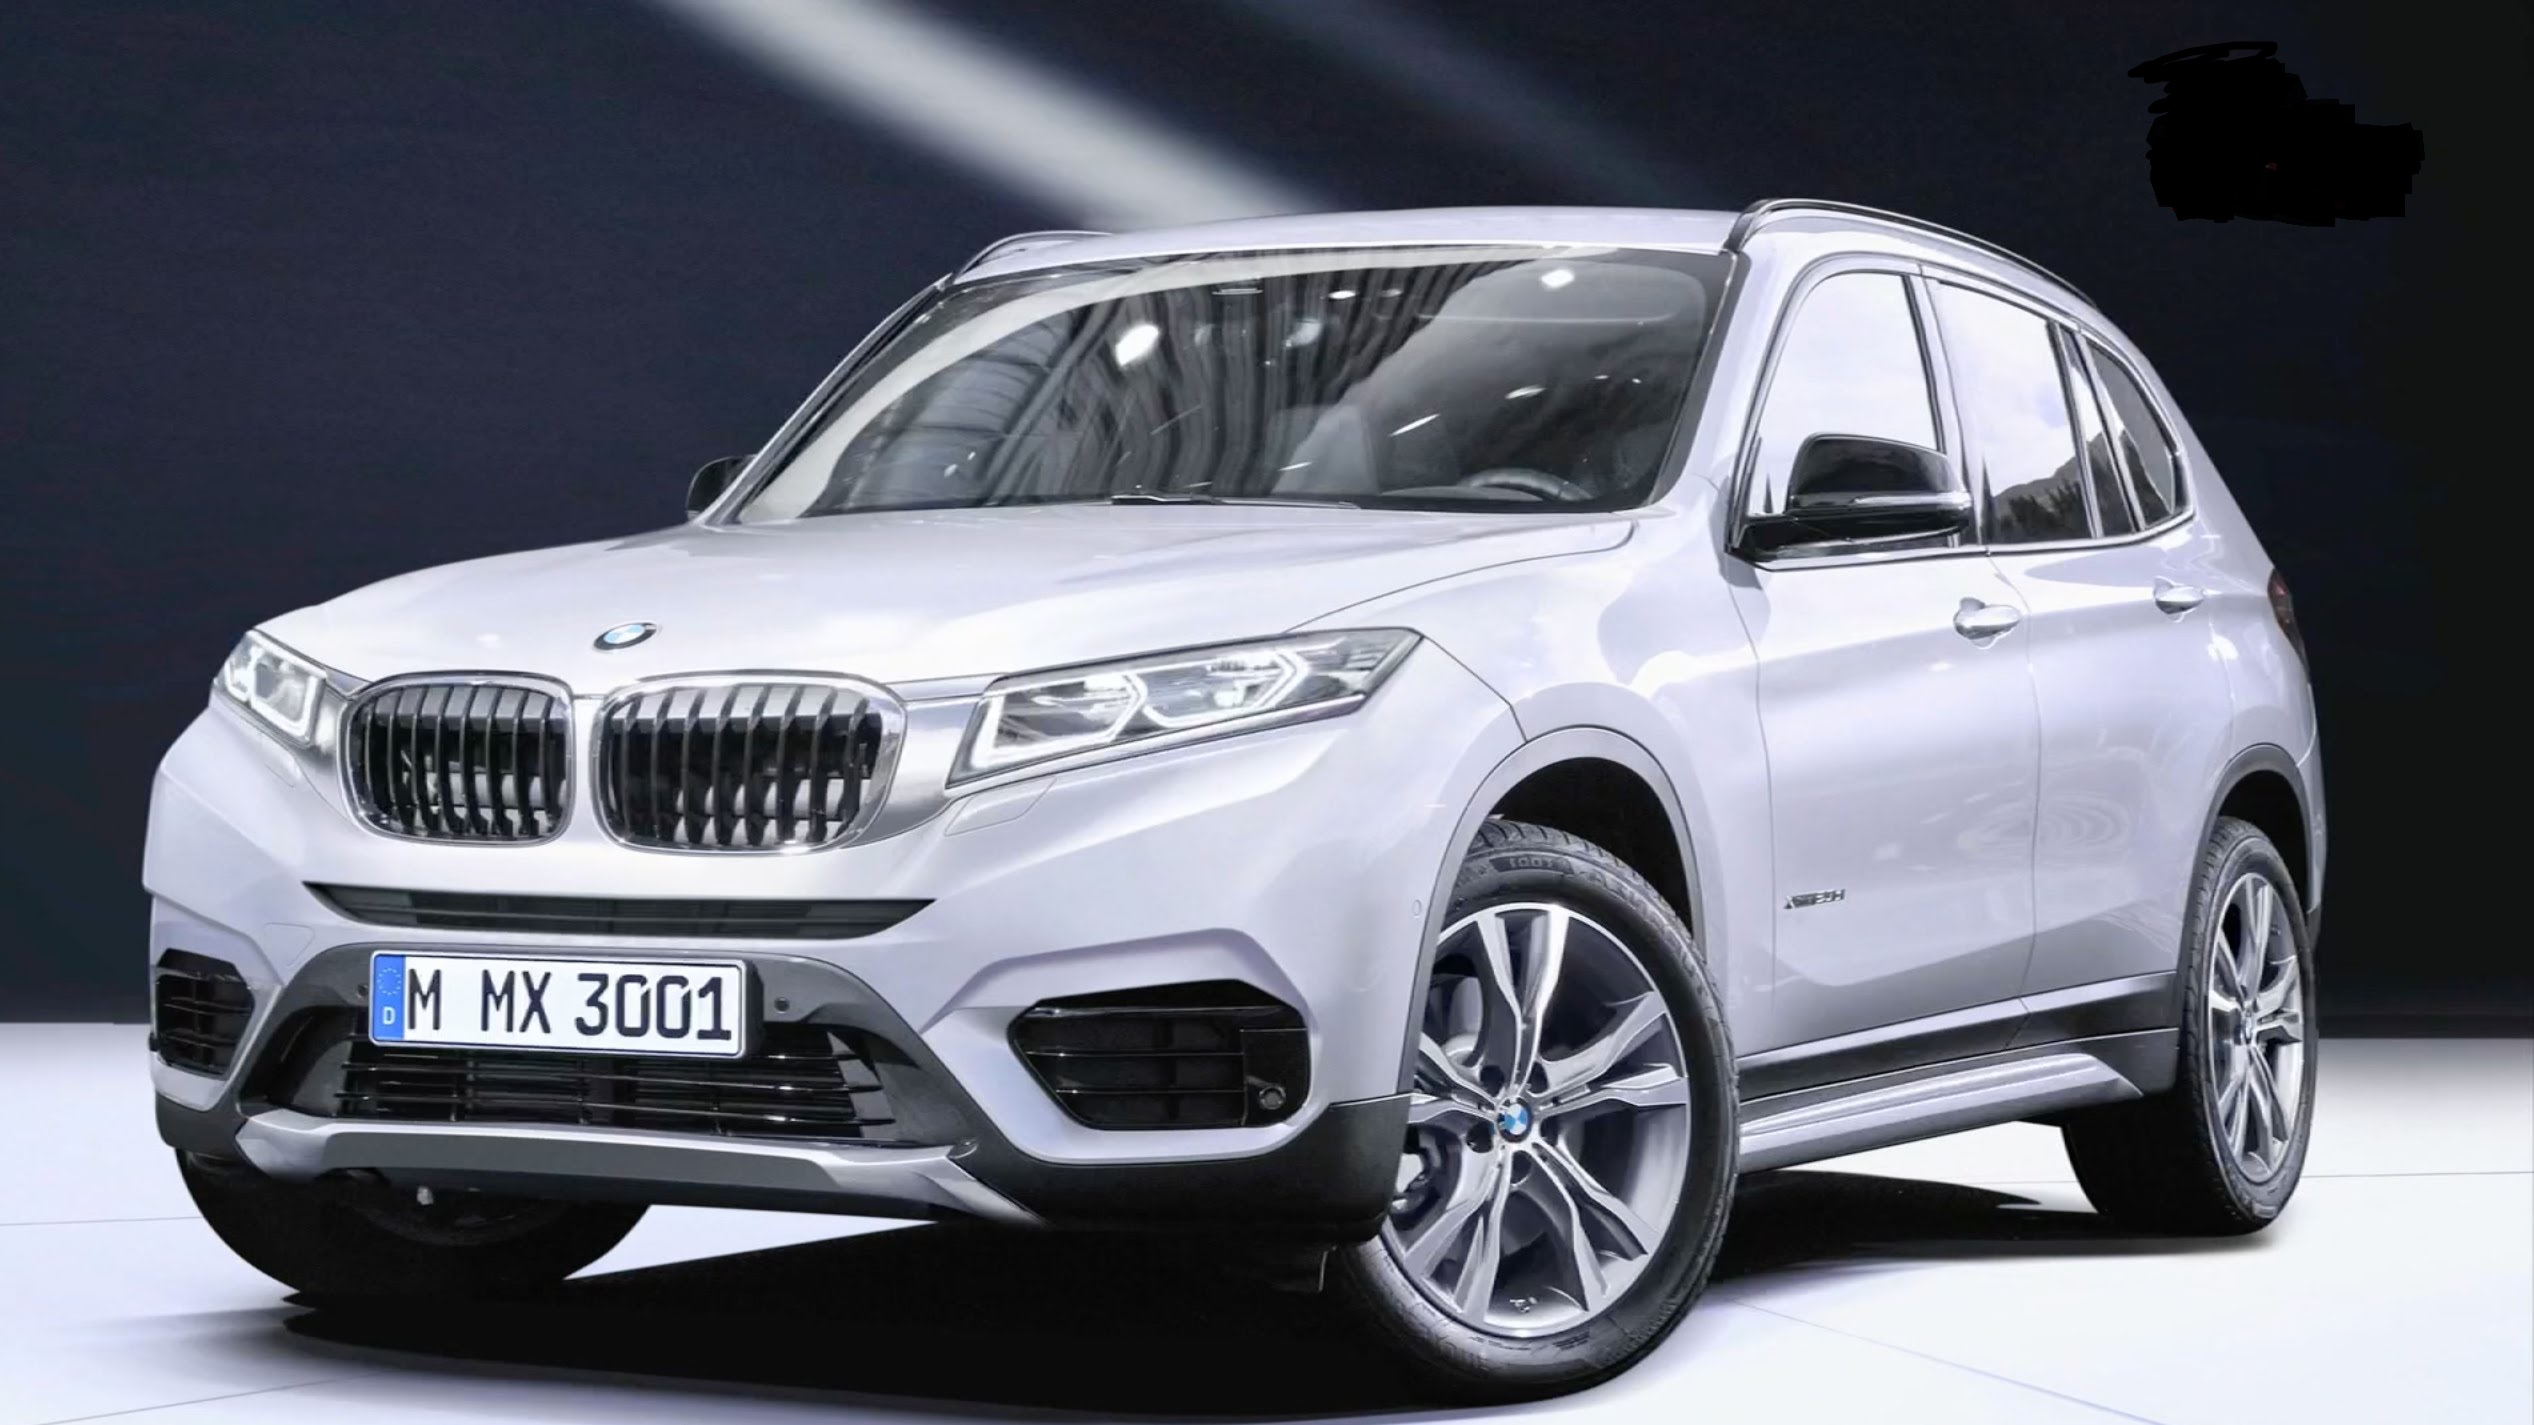 2018 Bmw X3 Interior New Suv Price